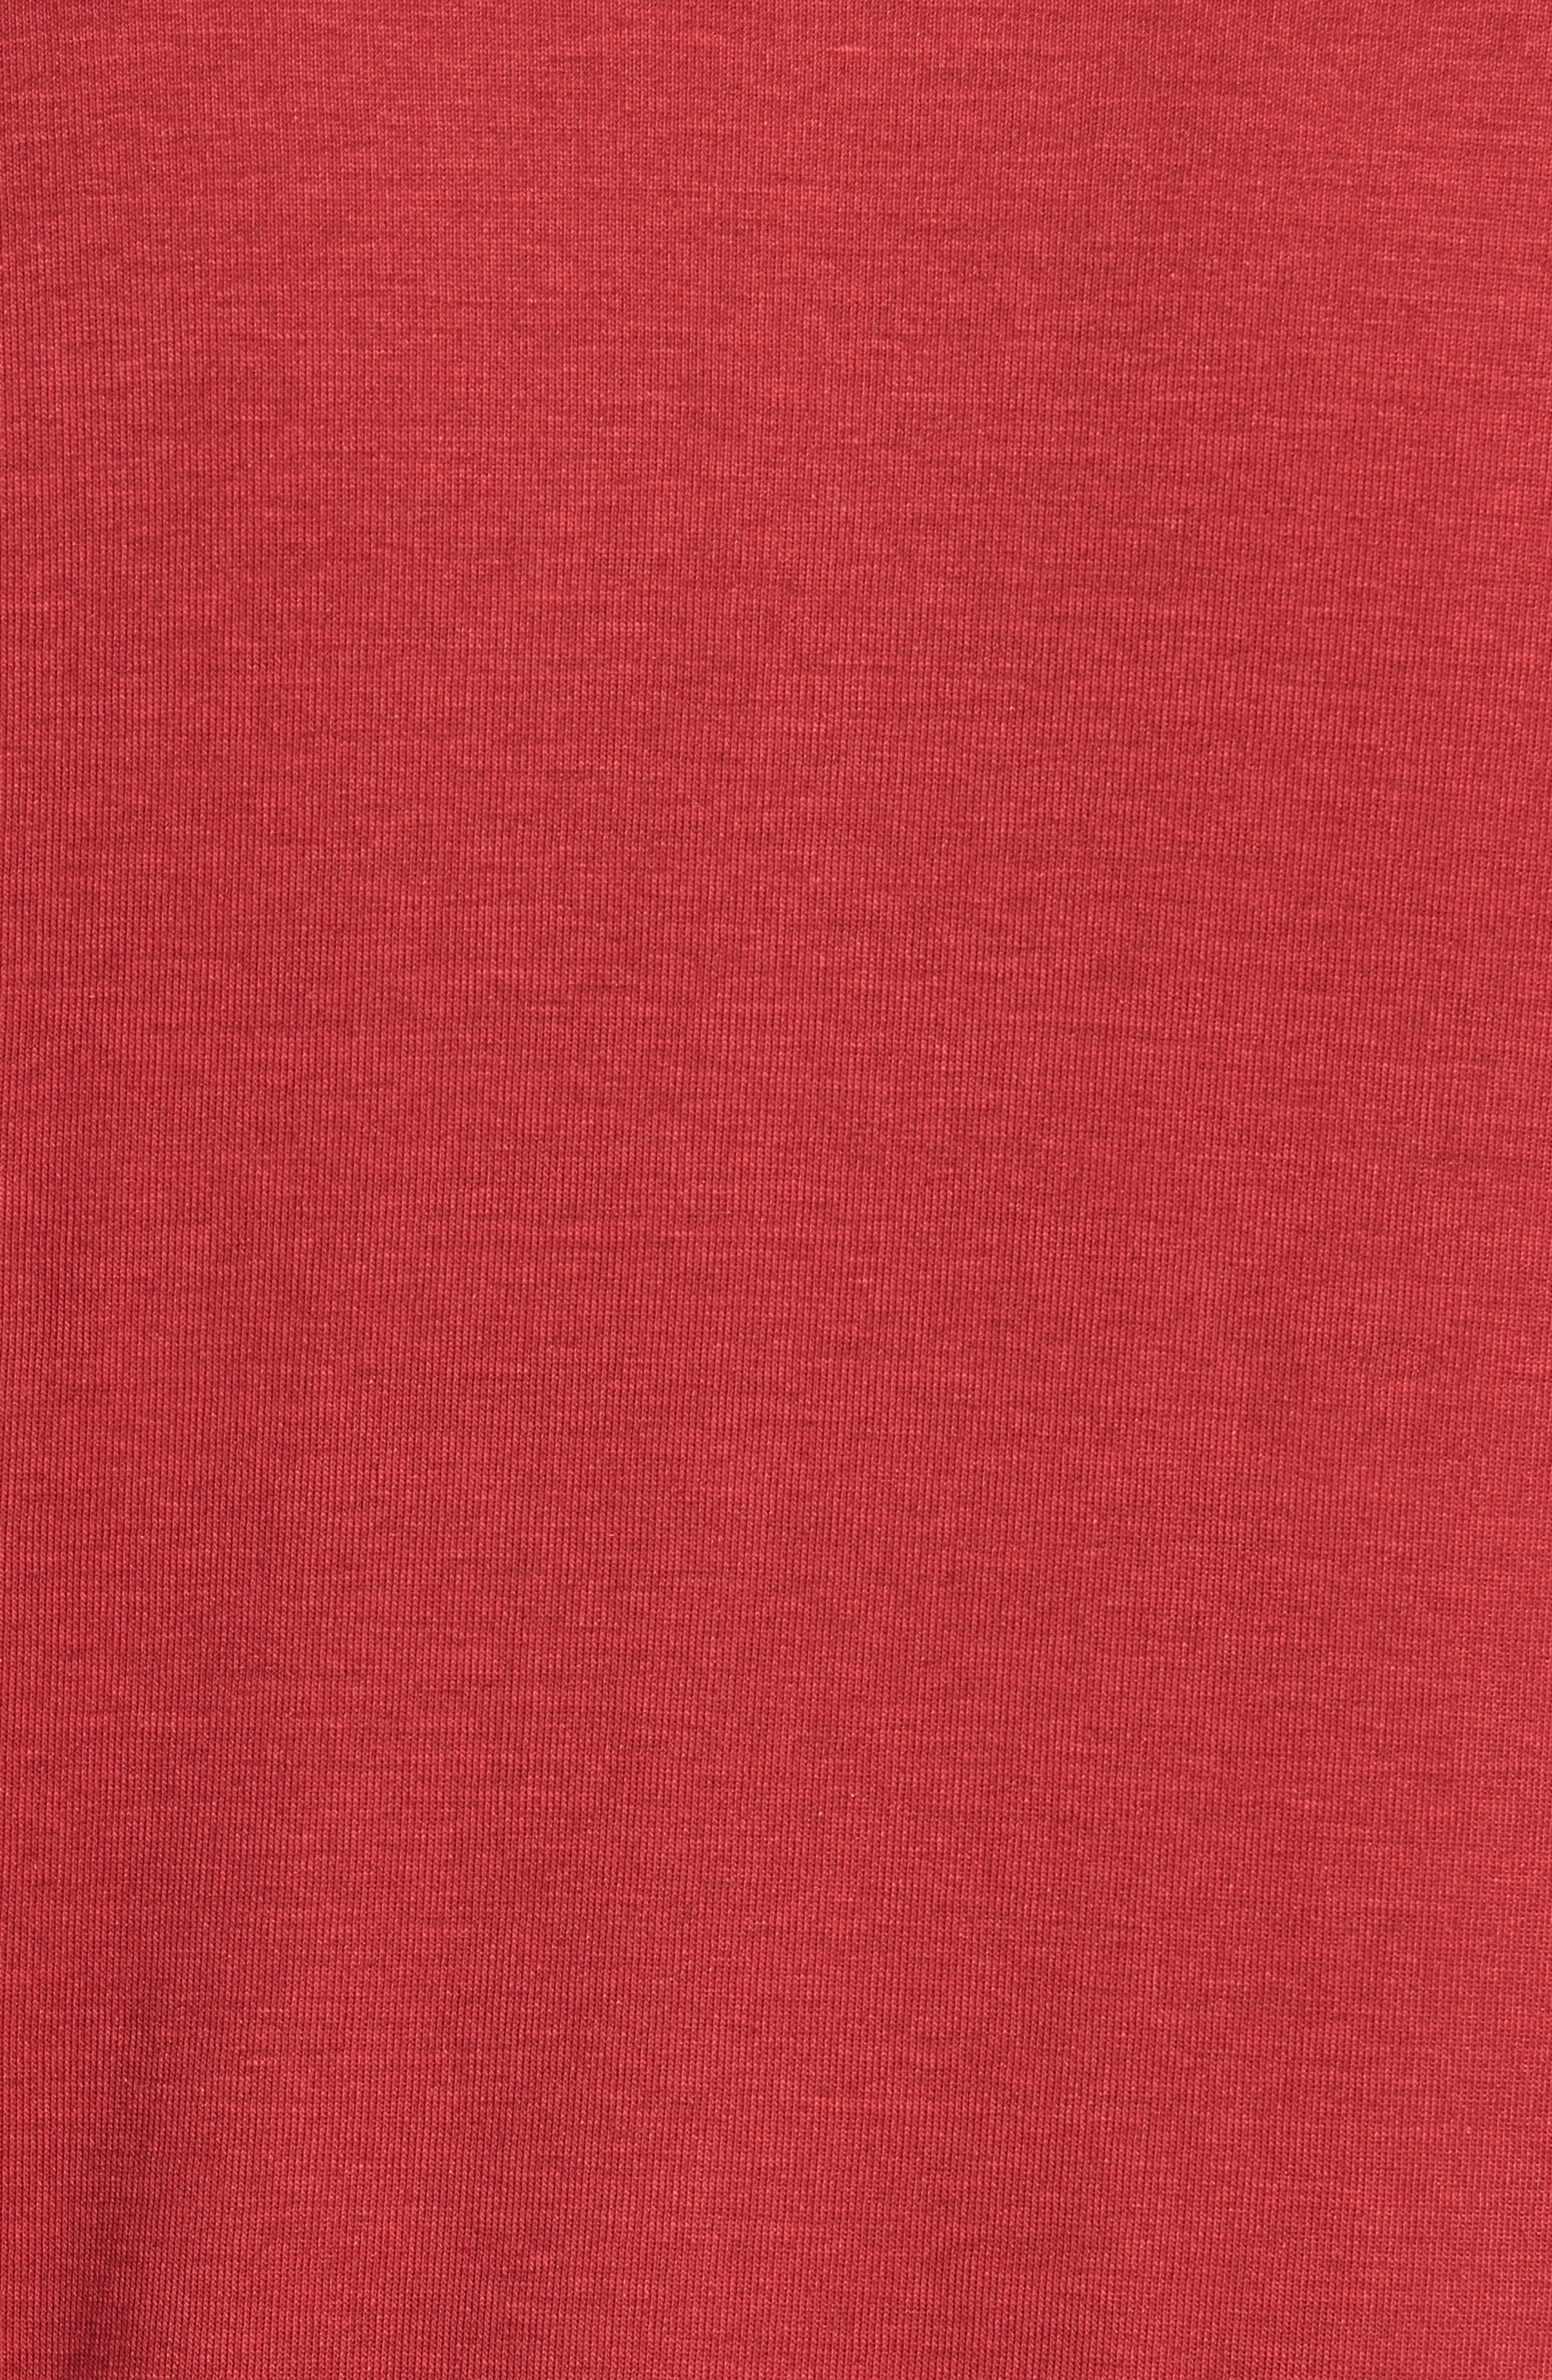 Alternate Image 5  - Tommy Bahama Dual in the Sun Reversible T-Shirt